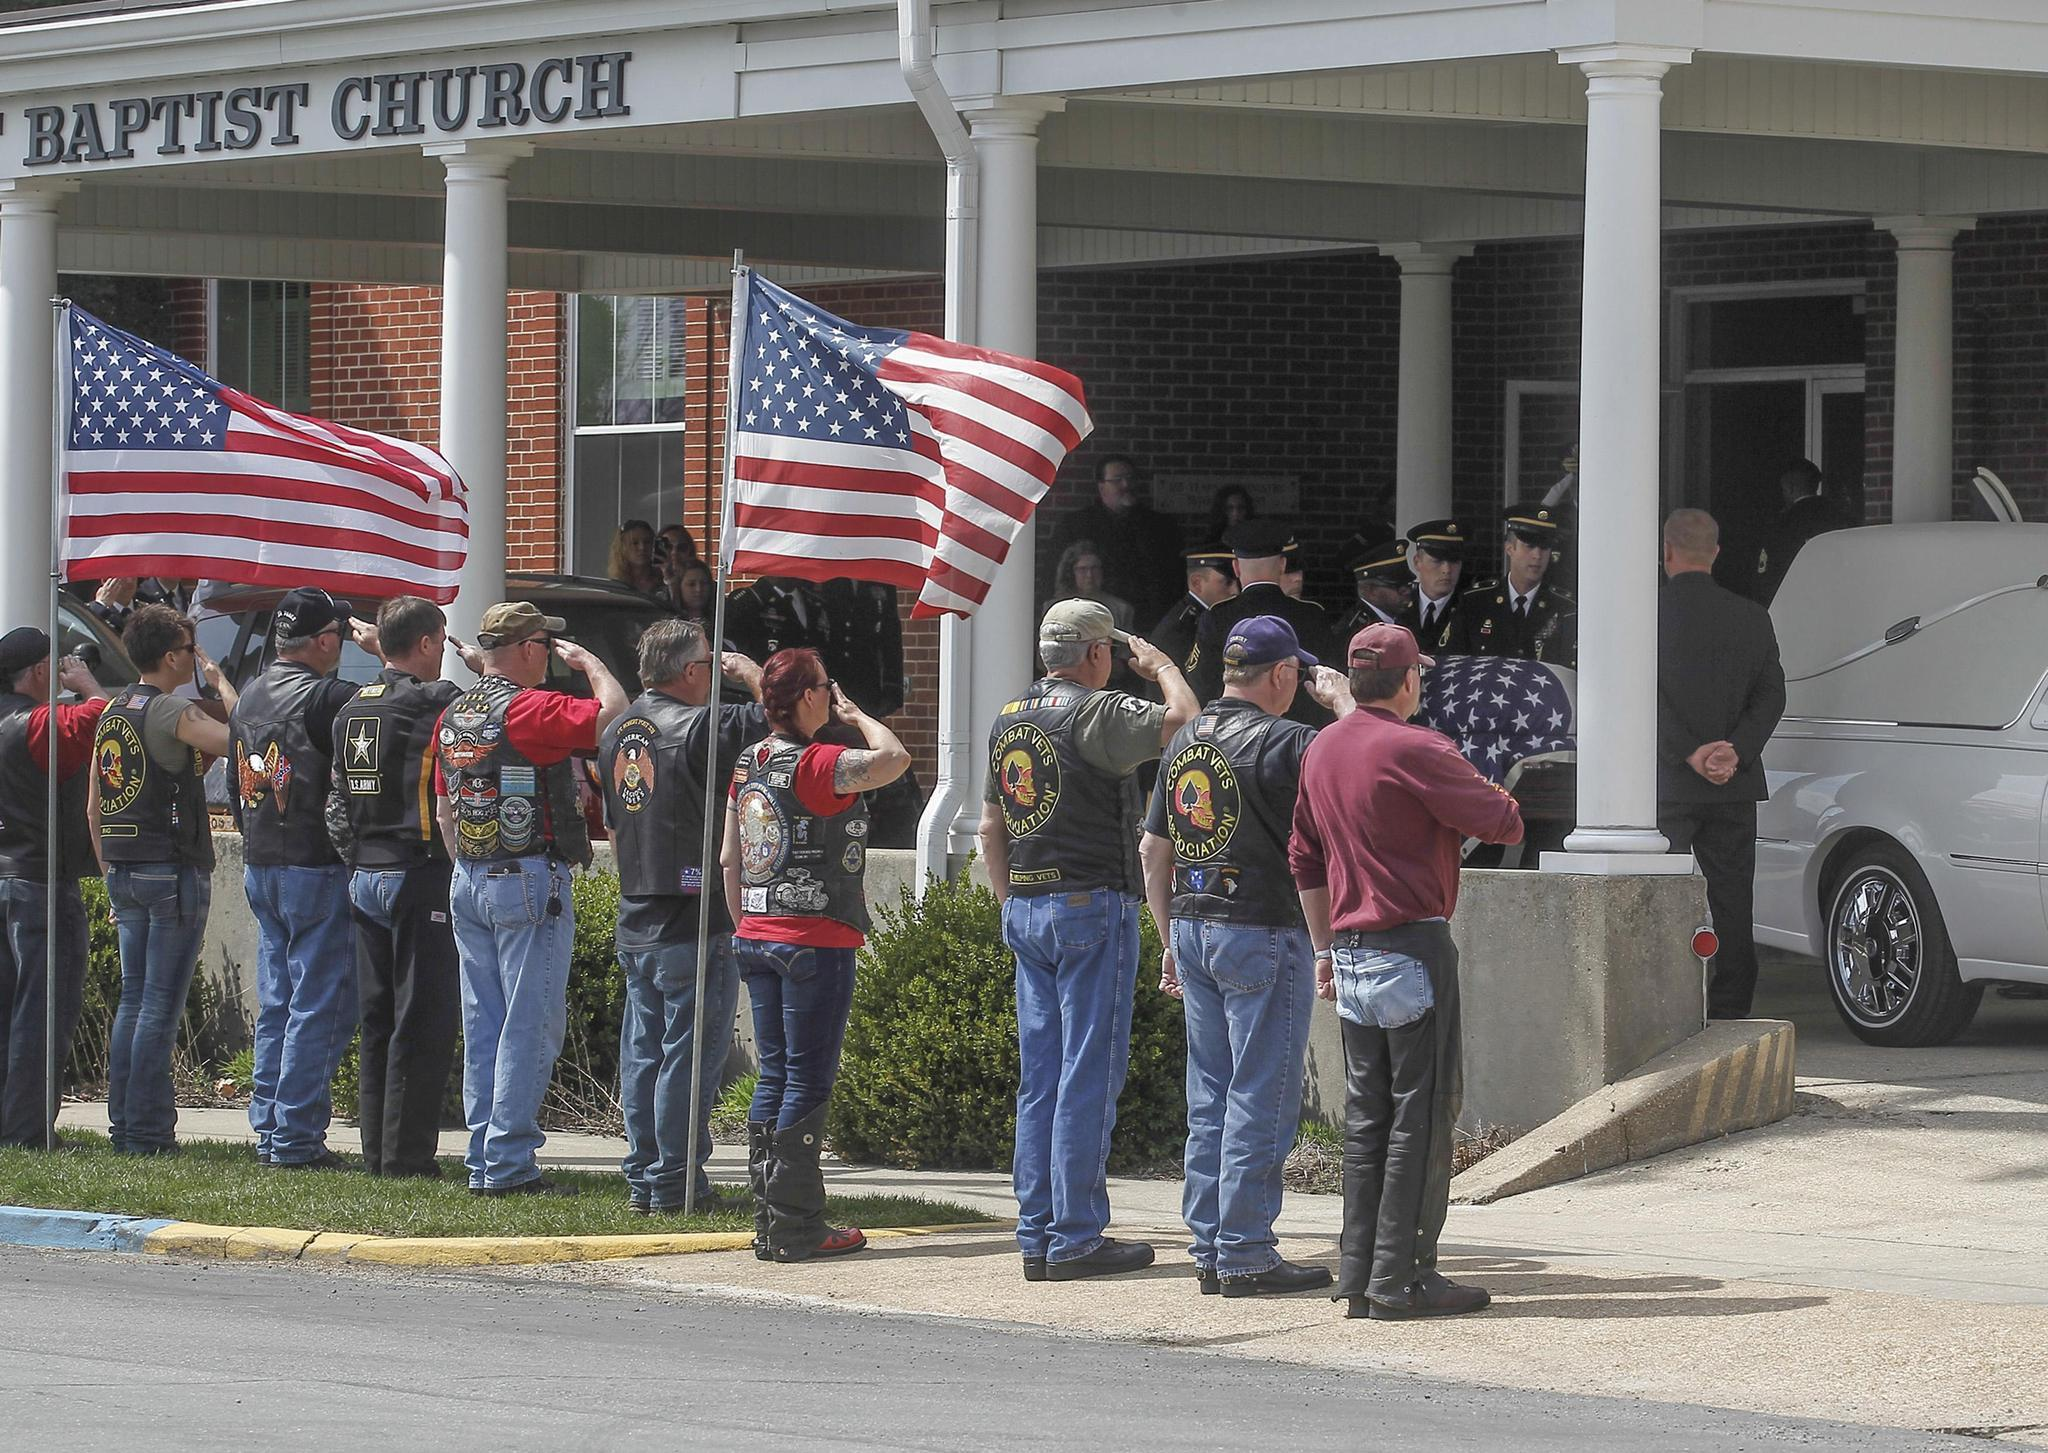 Members of the Patriot Guard Riders motorcycle club salute the casket outside the First Baptist Church after a private funeral service for Timothy Owens, 37, in Rolla, Missouri. Owens was one of three U.S. soldiers killed by Army Specialist Ivan Lopez in a shooting rampage at the Fort Hood Army base earlier this month.